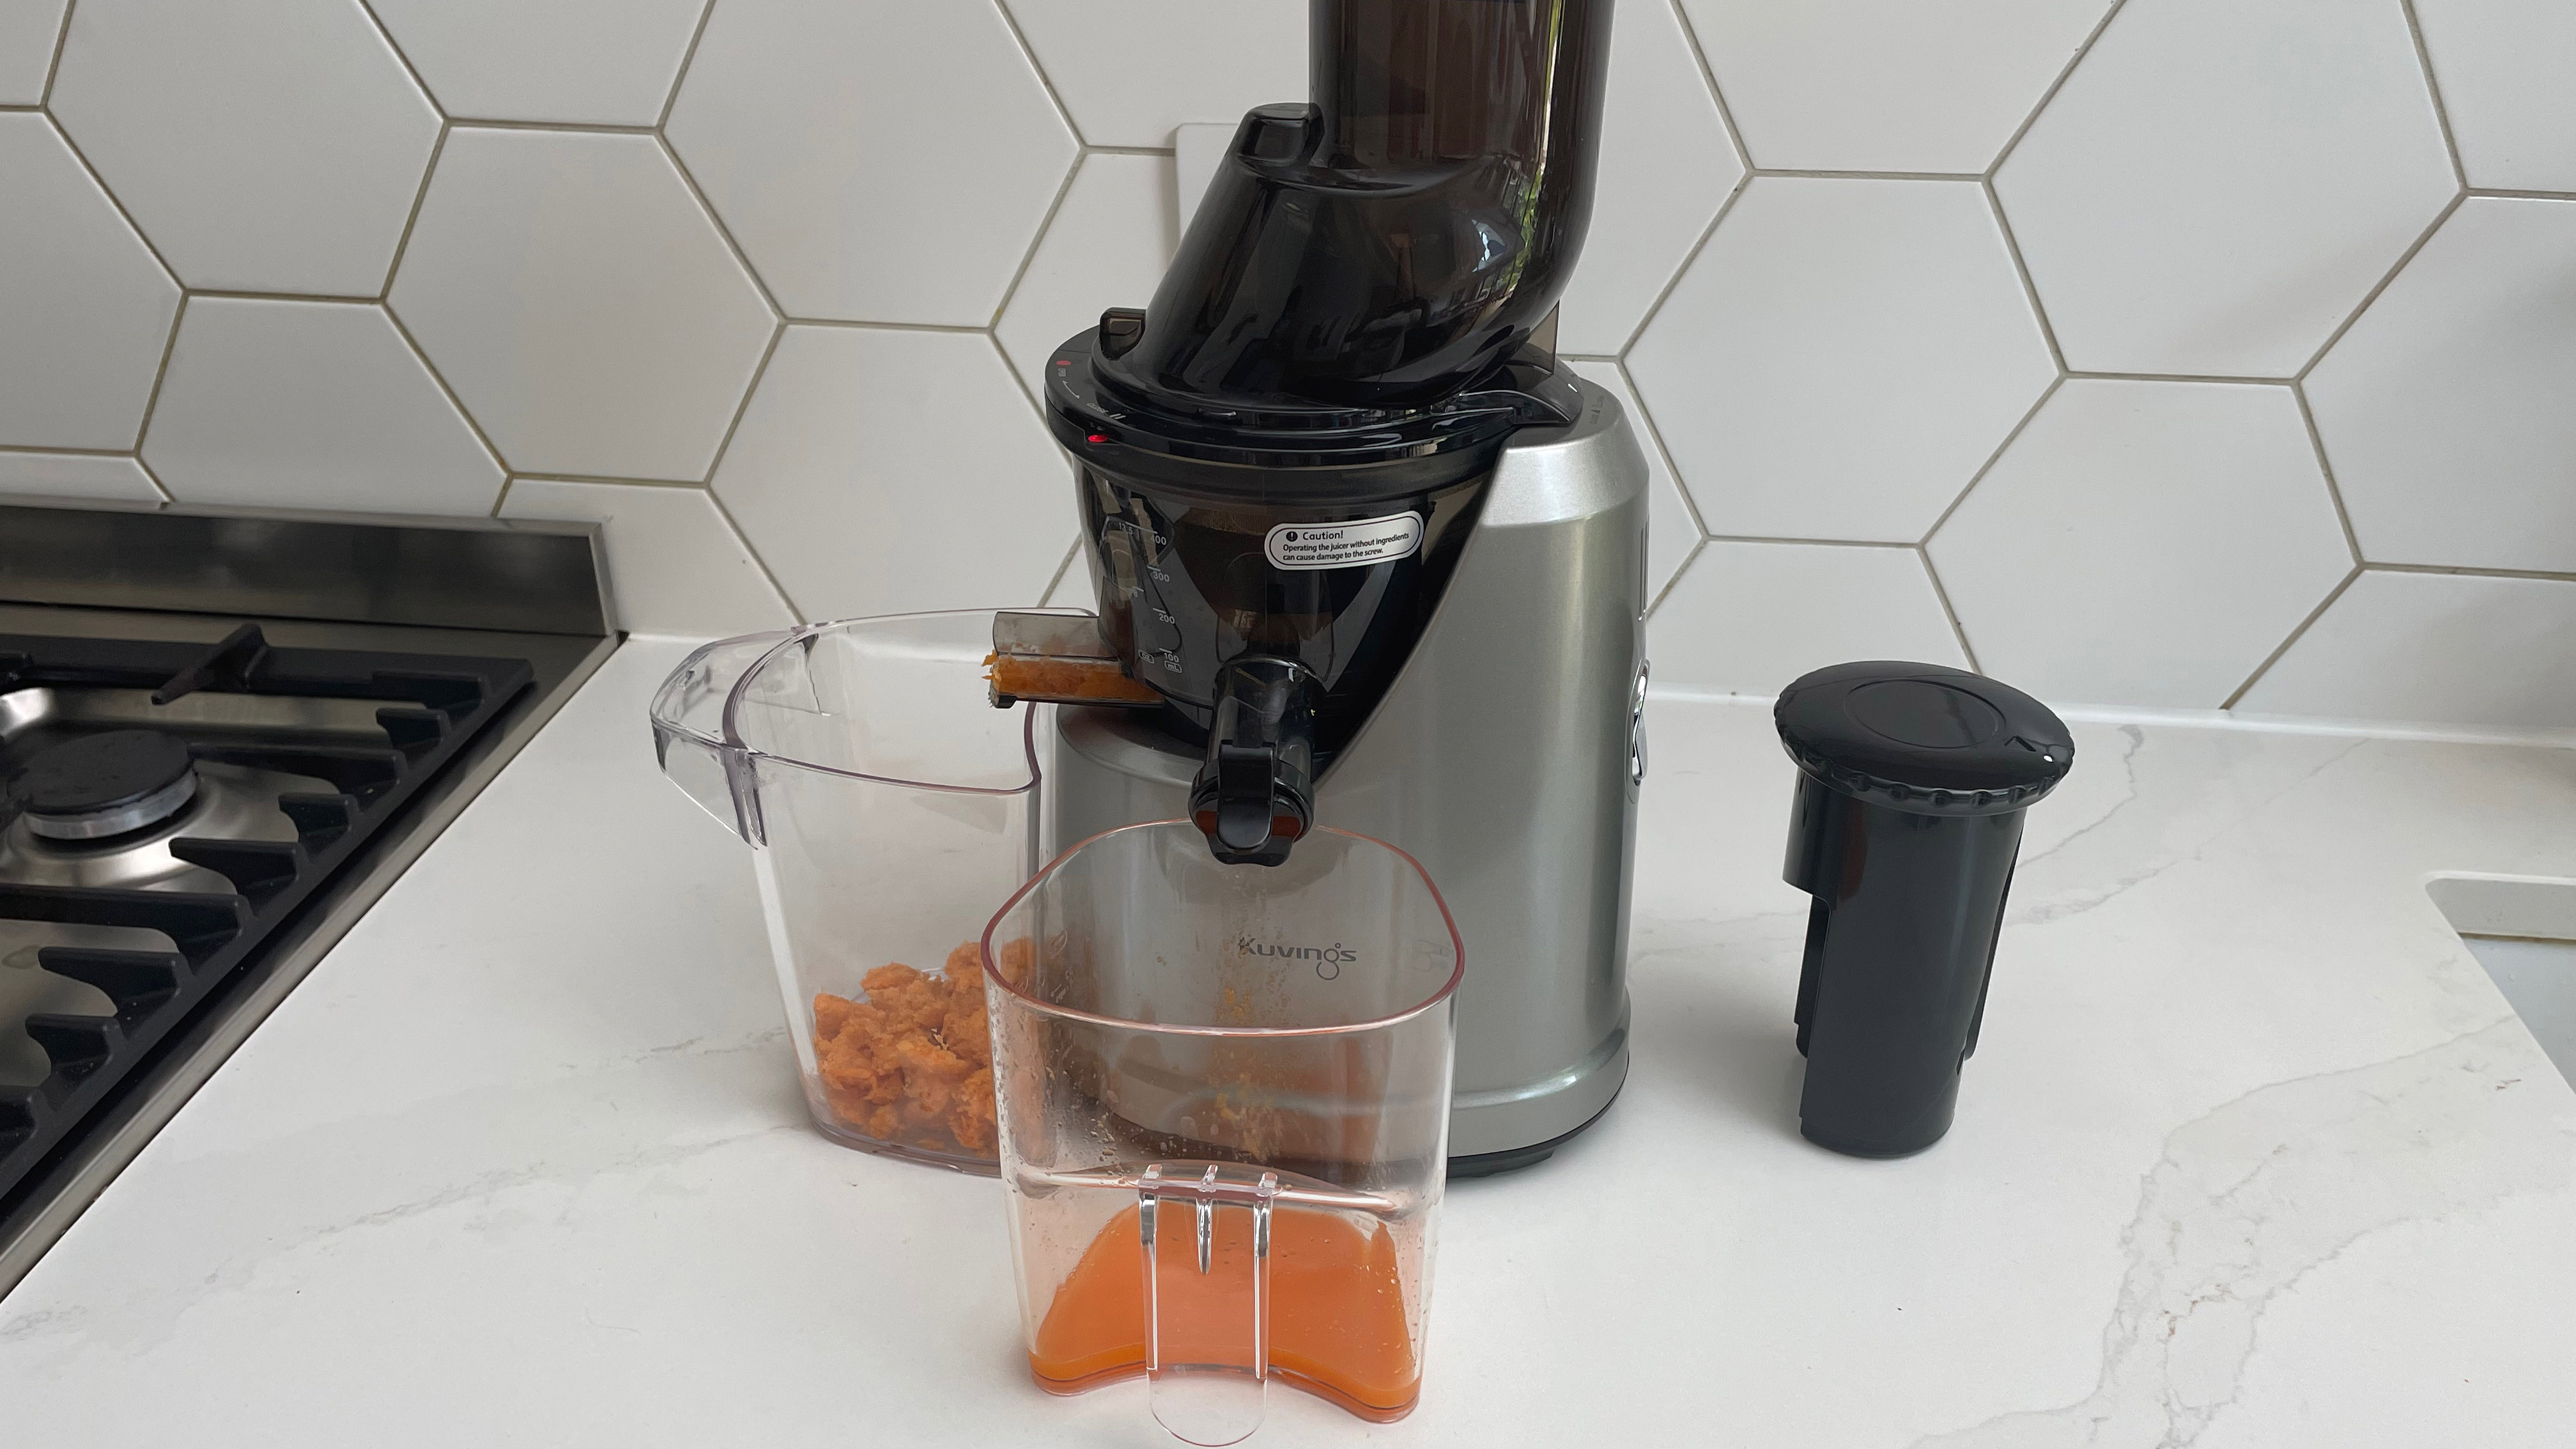 Kuvings B1700 being used to juice carrots